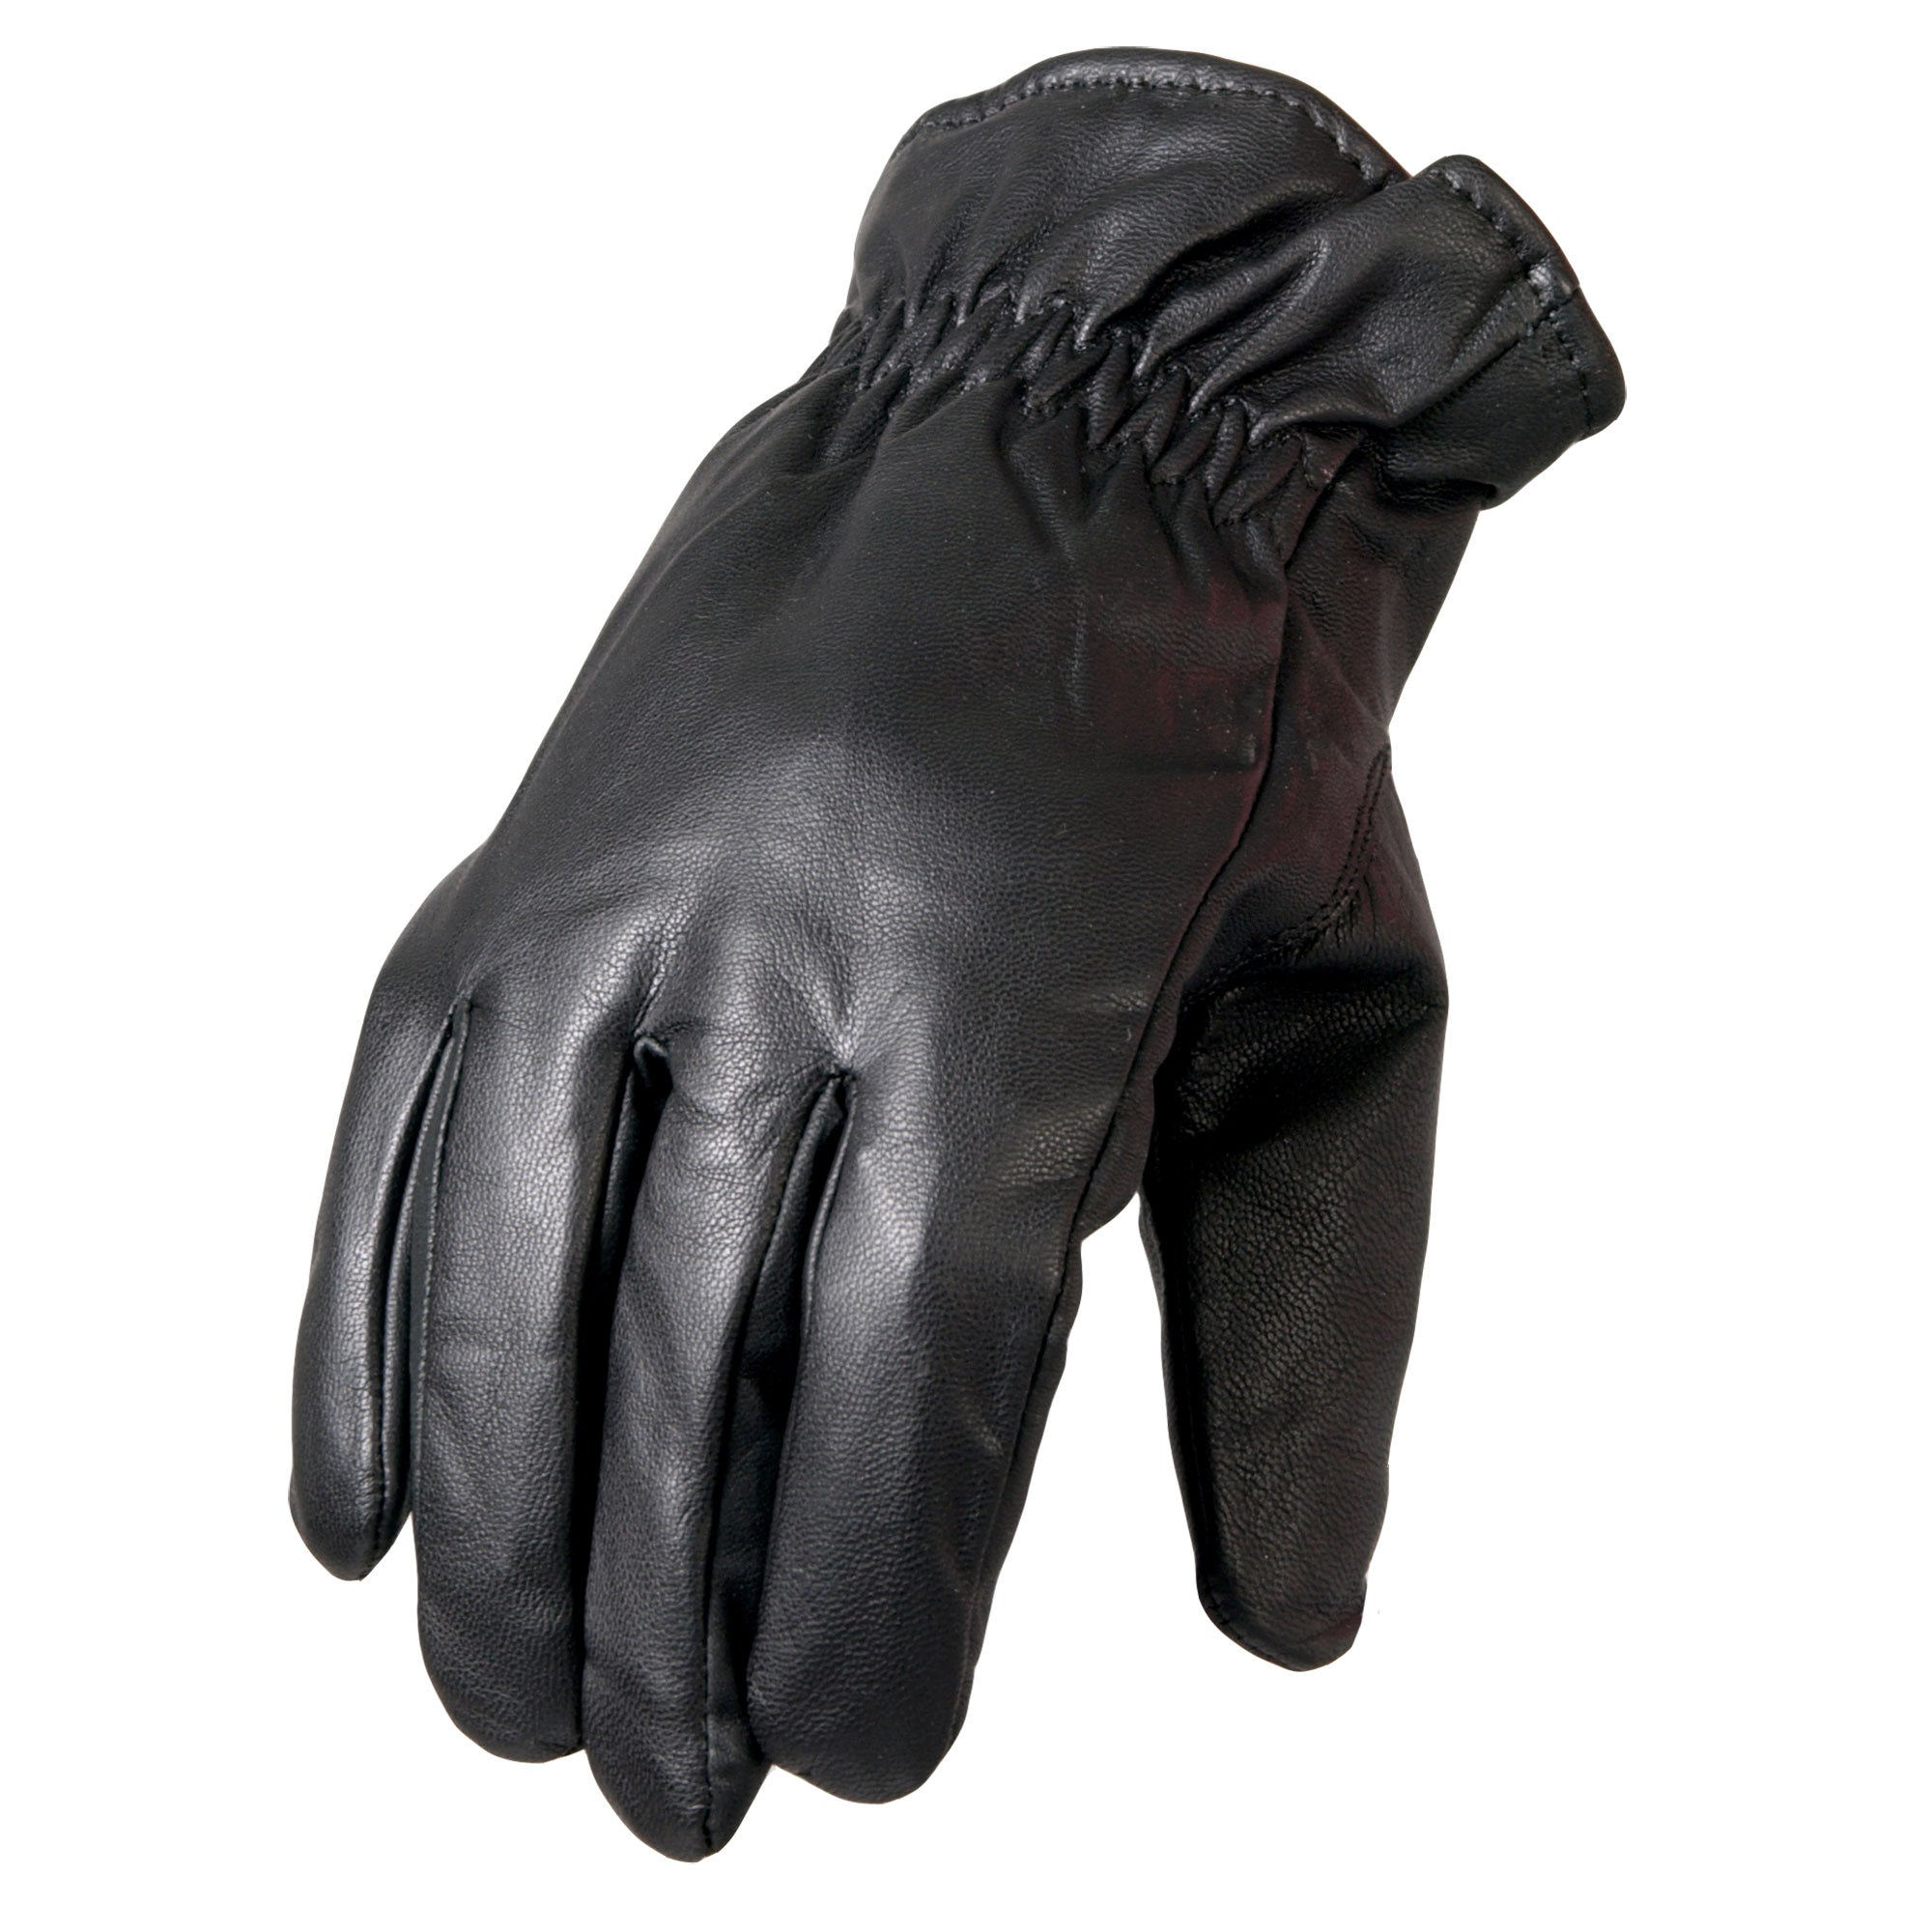 Hot Leathers GVM1018 Waterproof Unisex Leather Riding Glove